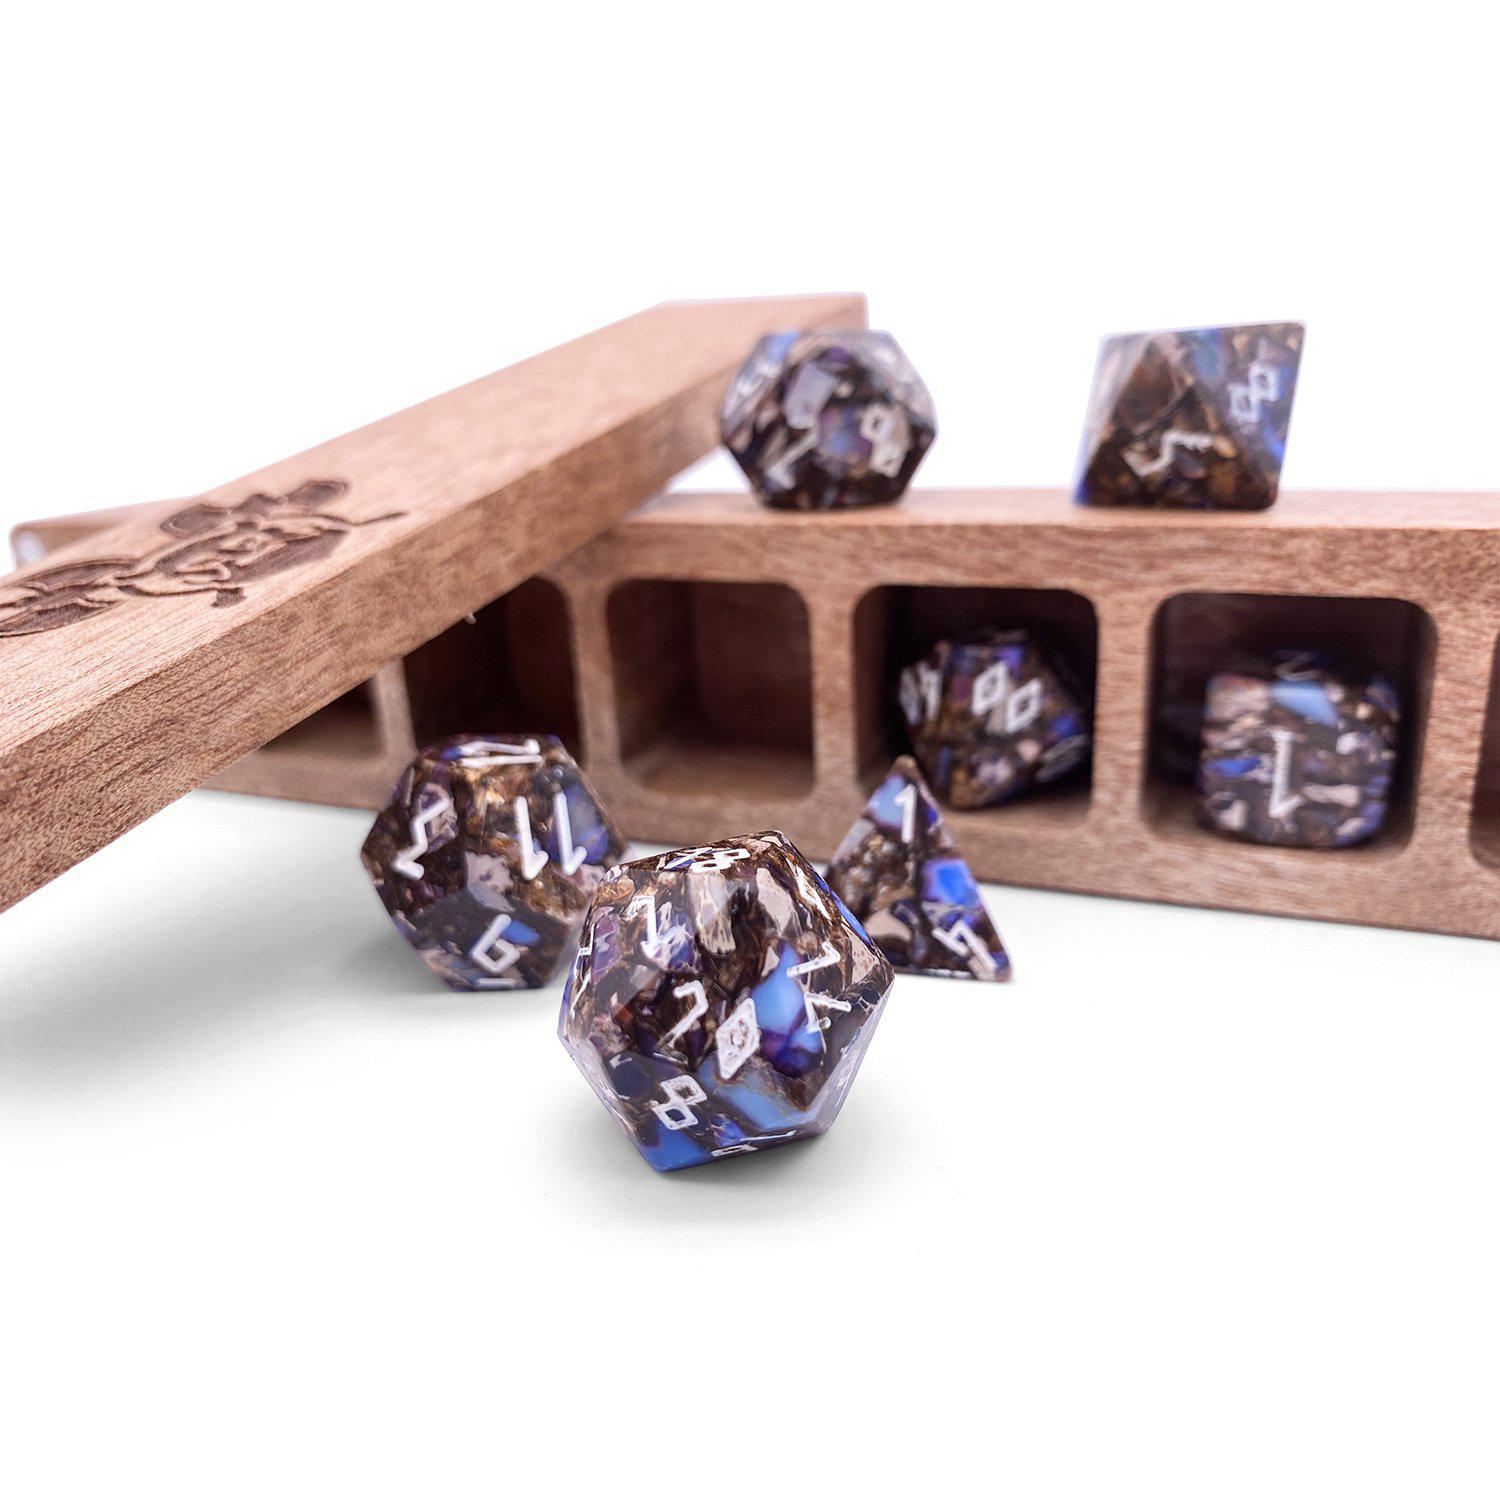 Copper Blue 7 Piece RPG Dice Set Gemstone